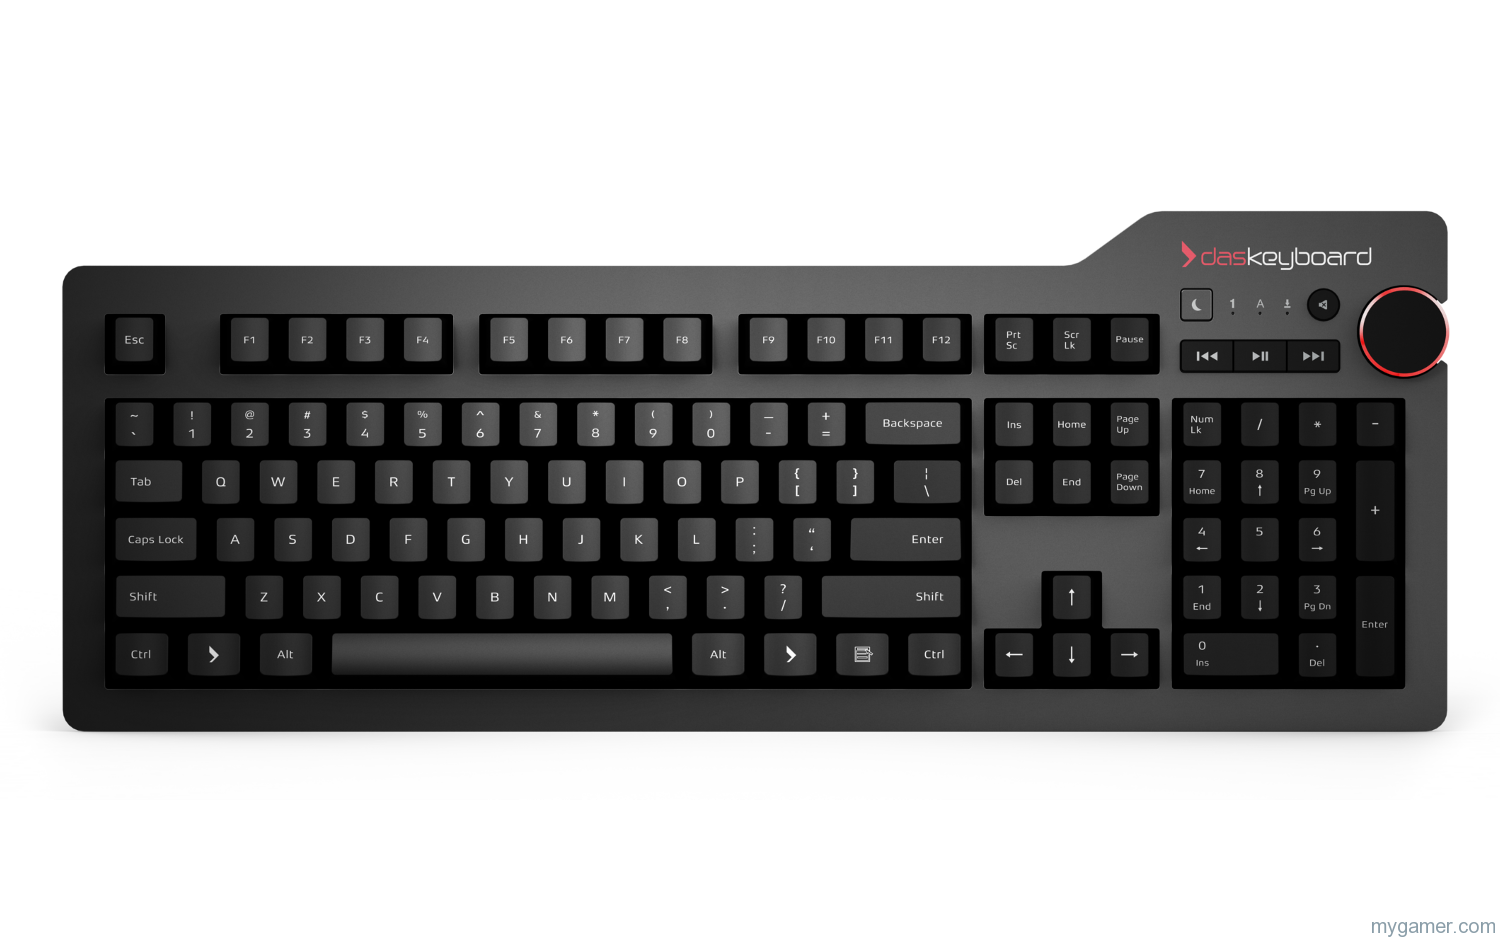 Das Keyboard Announces New Das Keyboard 4 Model Das Keyboard Announces New Das Keyboard 4 Model daskeyboard 4 professional front view